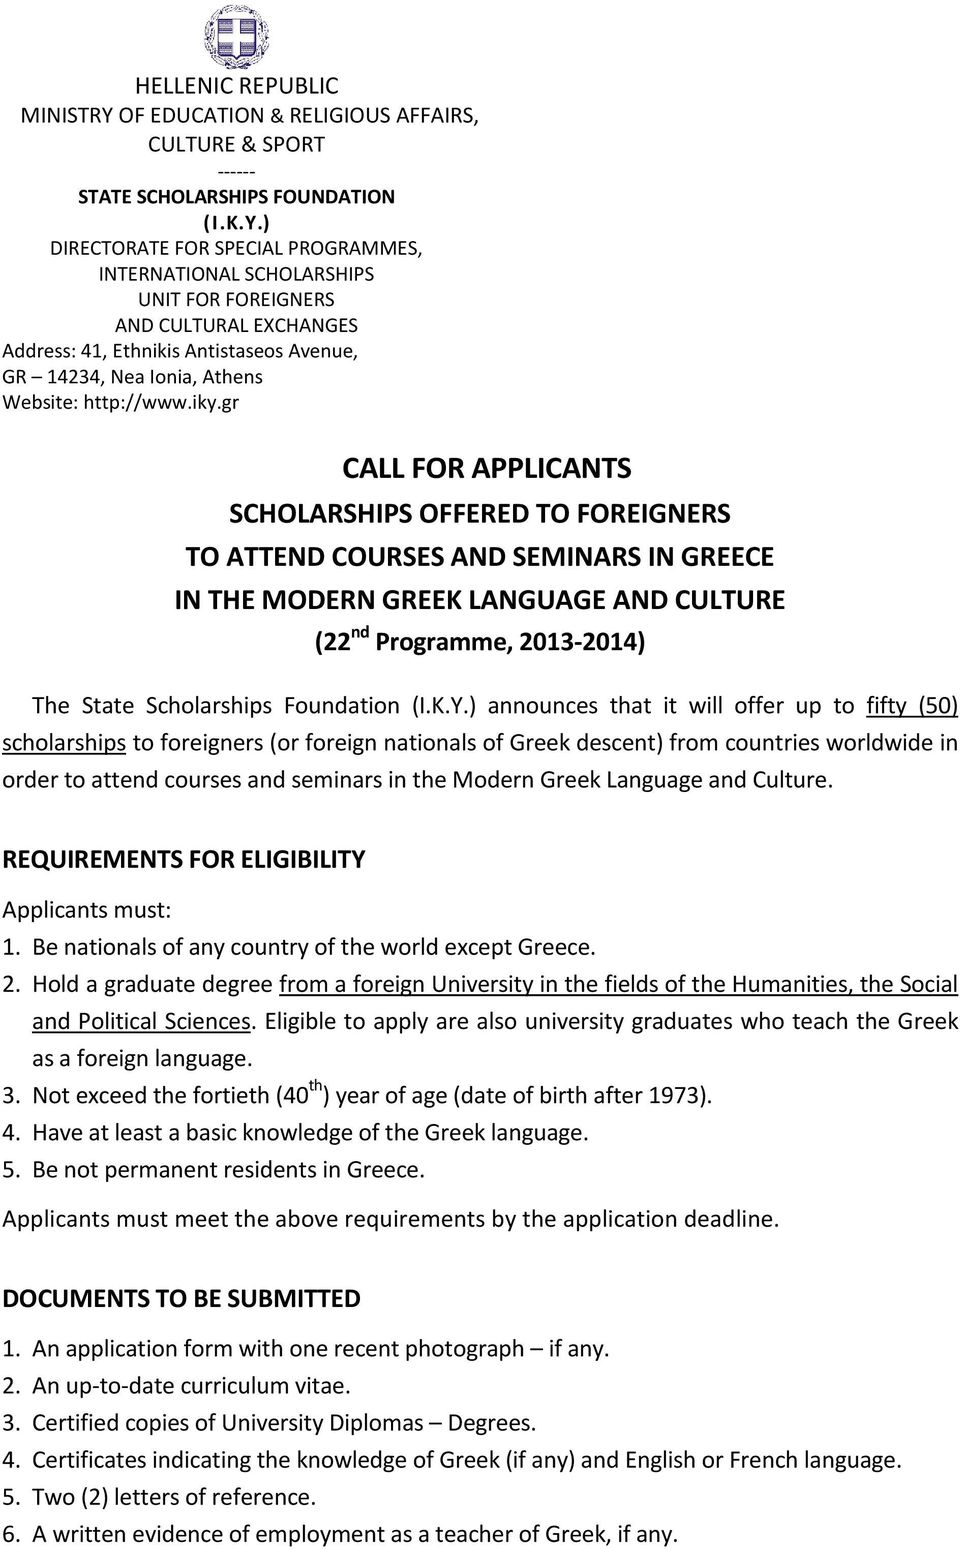 iky.gr CALL FOR APPLICANTS SCHOLARSHIPS OFFERED TO FOREIGNERS TO ATTEND COURSES AND SEMINARS IN GREECE IN THE MODERN GREEK LANGUAGE AND CULTURE (22 nd Programme, 2013-2014) The State Scholarships